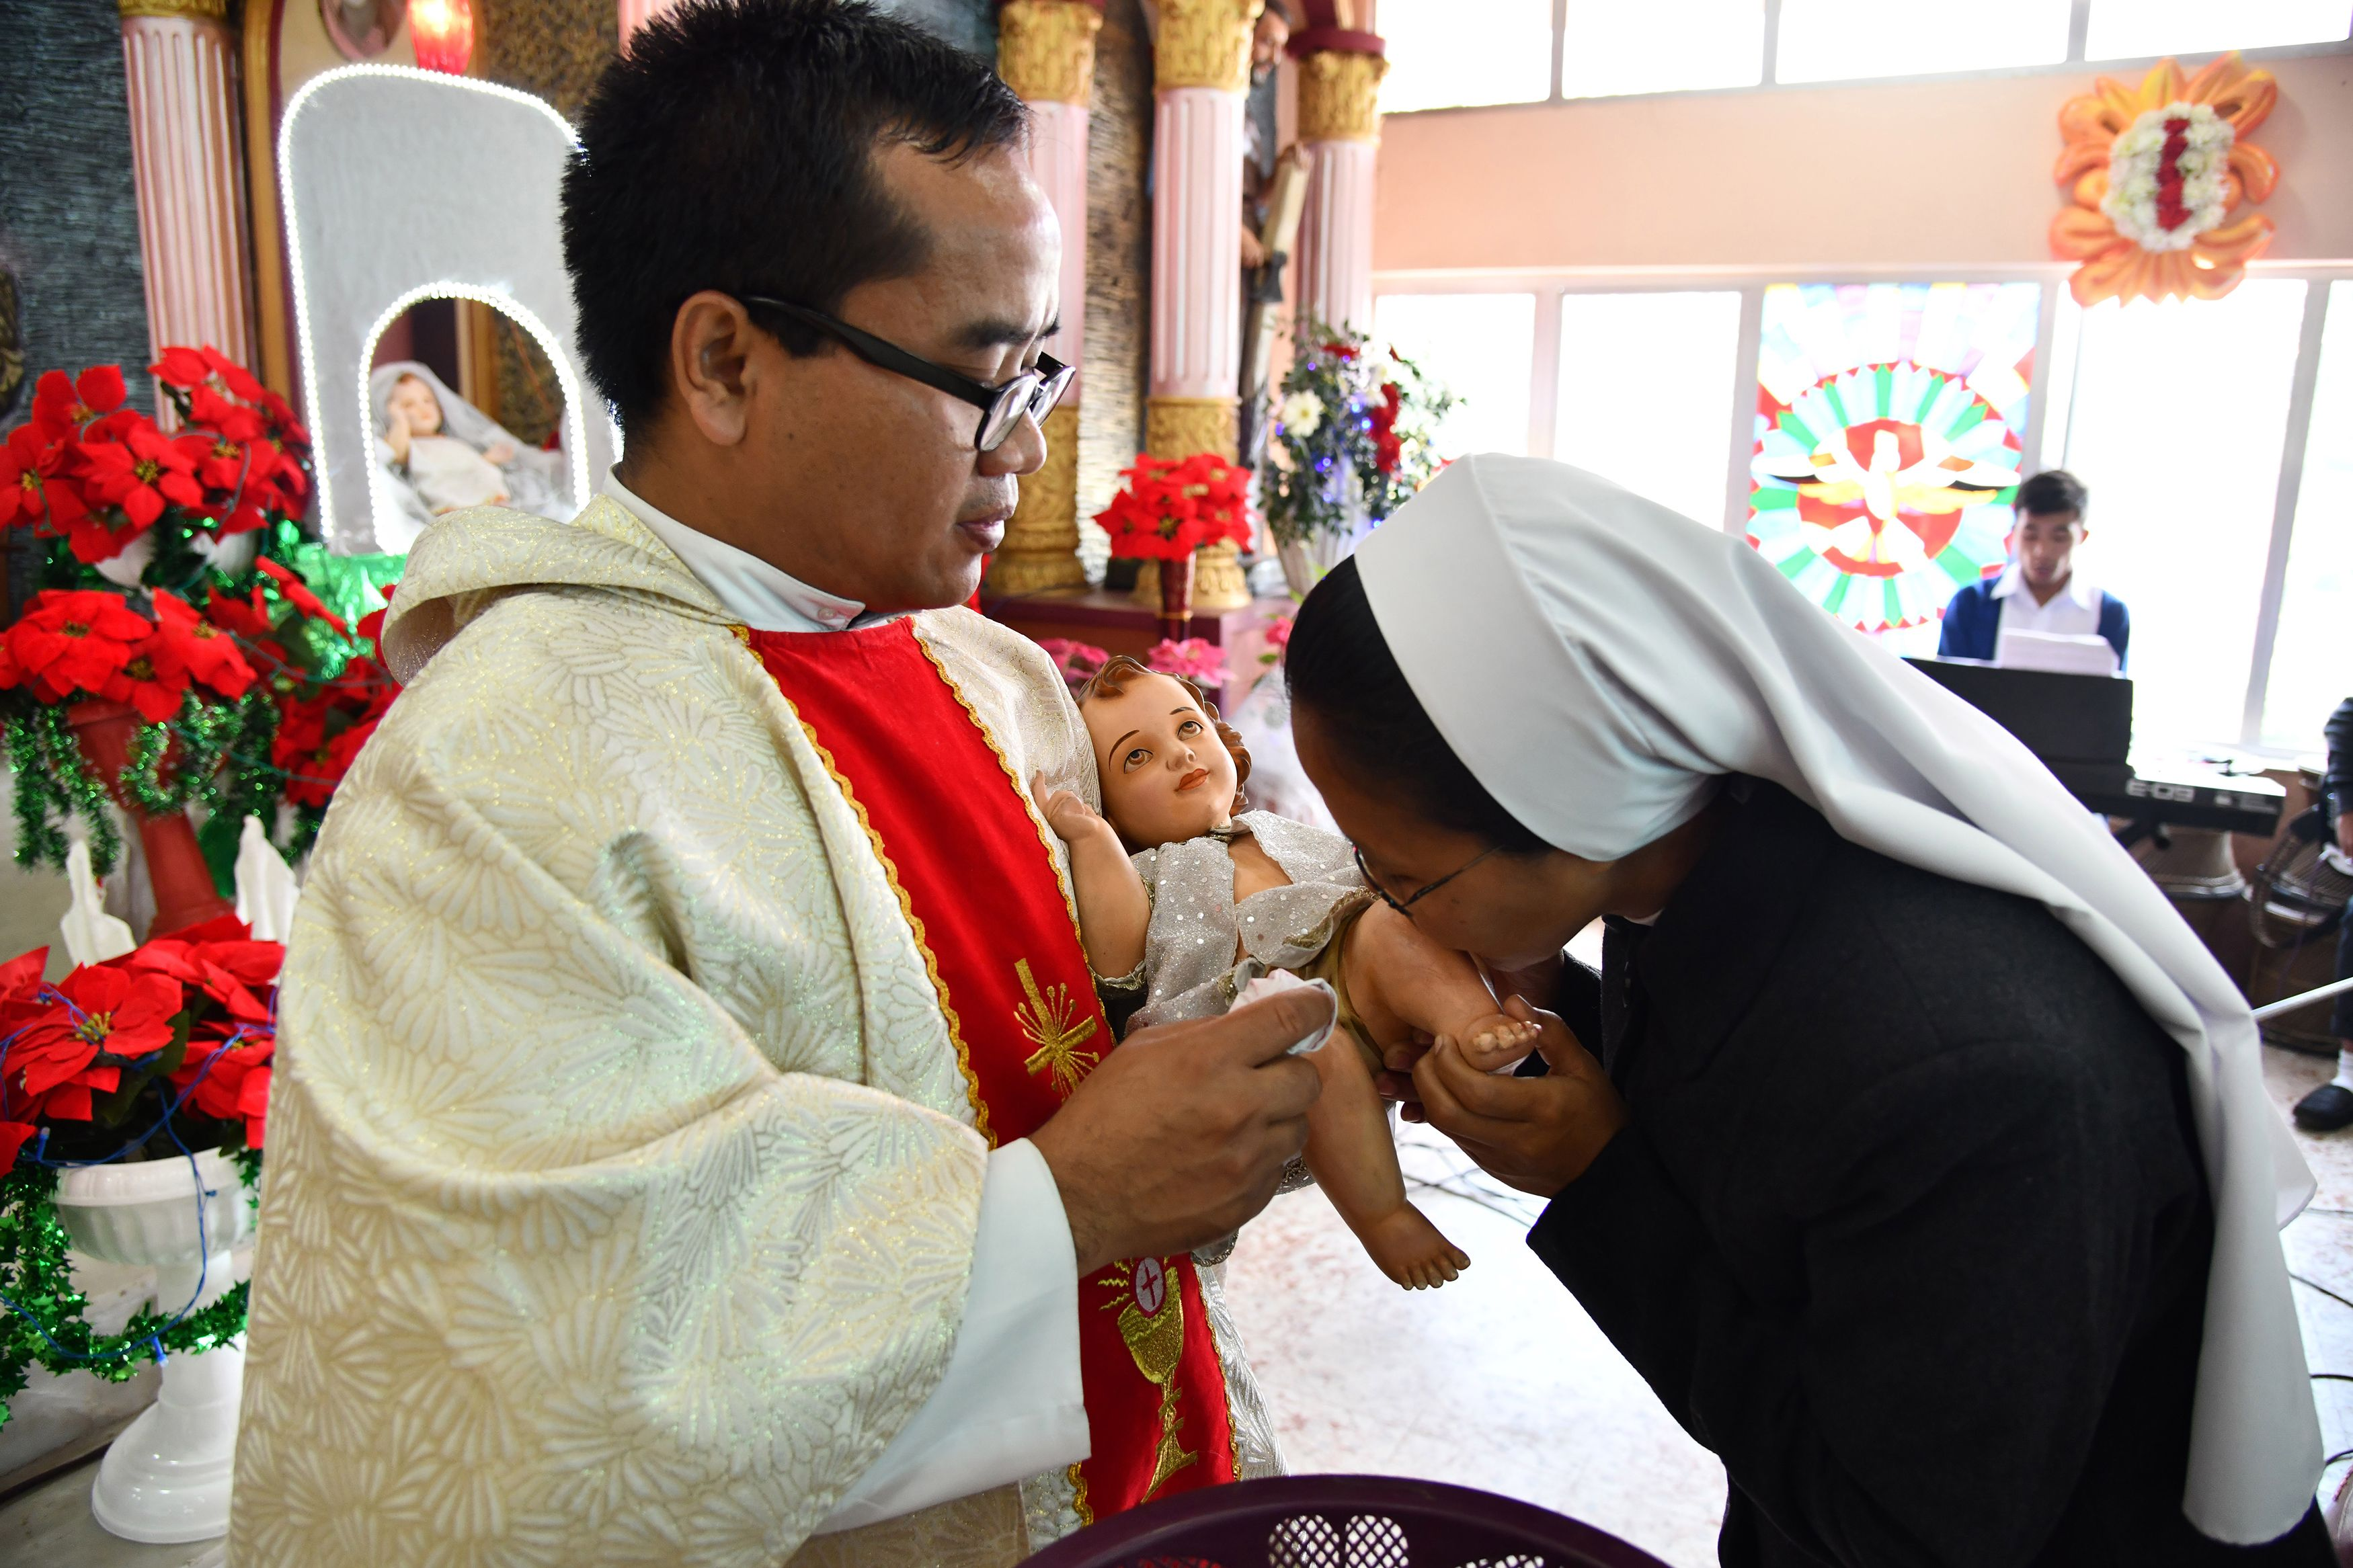 An Indian nun kisses a doll depicting the infant Jesus after Christmas prayers at St John's Church in Guwahati on December 25, 2018. (BIJU BORO/AFP/Getty Images)